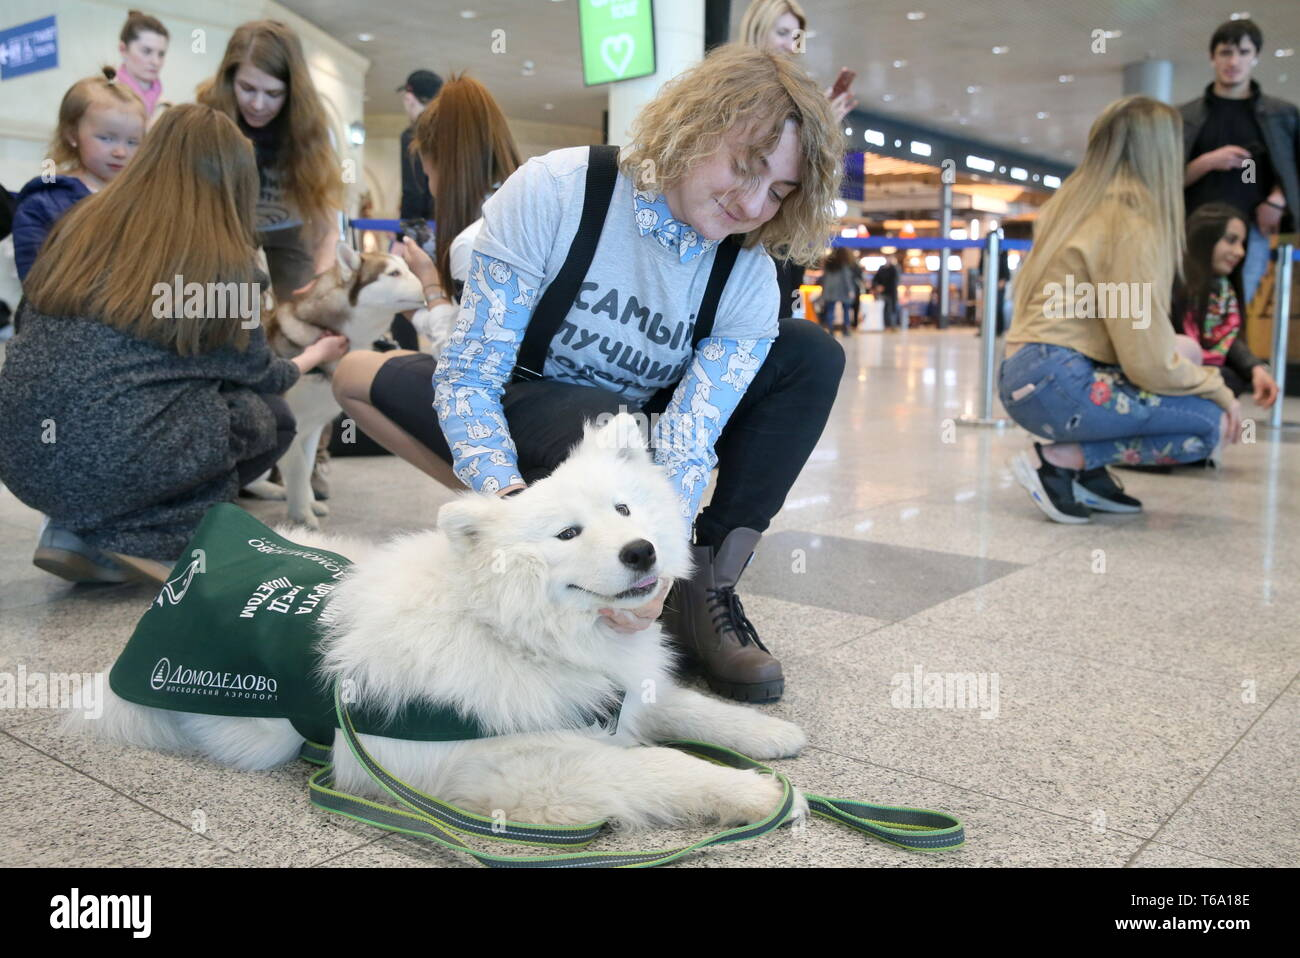 Russia. 30th Apr, 2019. MOSCOW REGION, RUSSIA - APRIL 30, 2019: A passenger hug a Samoyed dog to overcome the fear of flying during a campaign at Moscow's Domodedovo International Airport. Vladimir Gerdo/TASS Credit: ITAR-TASS News Agency/Alamy Live News - Stock Image